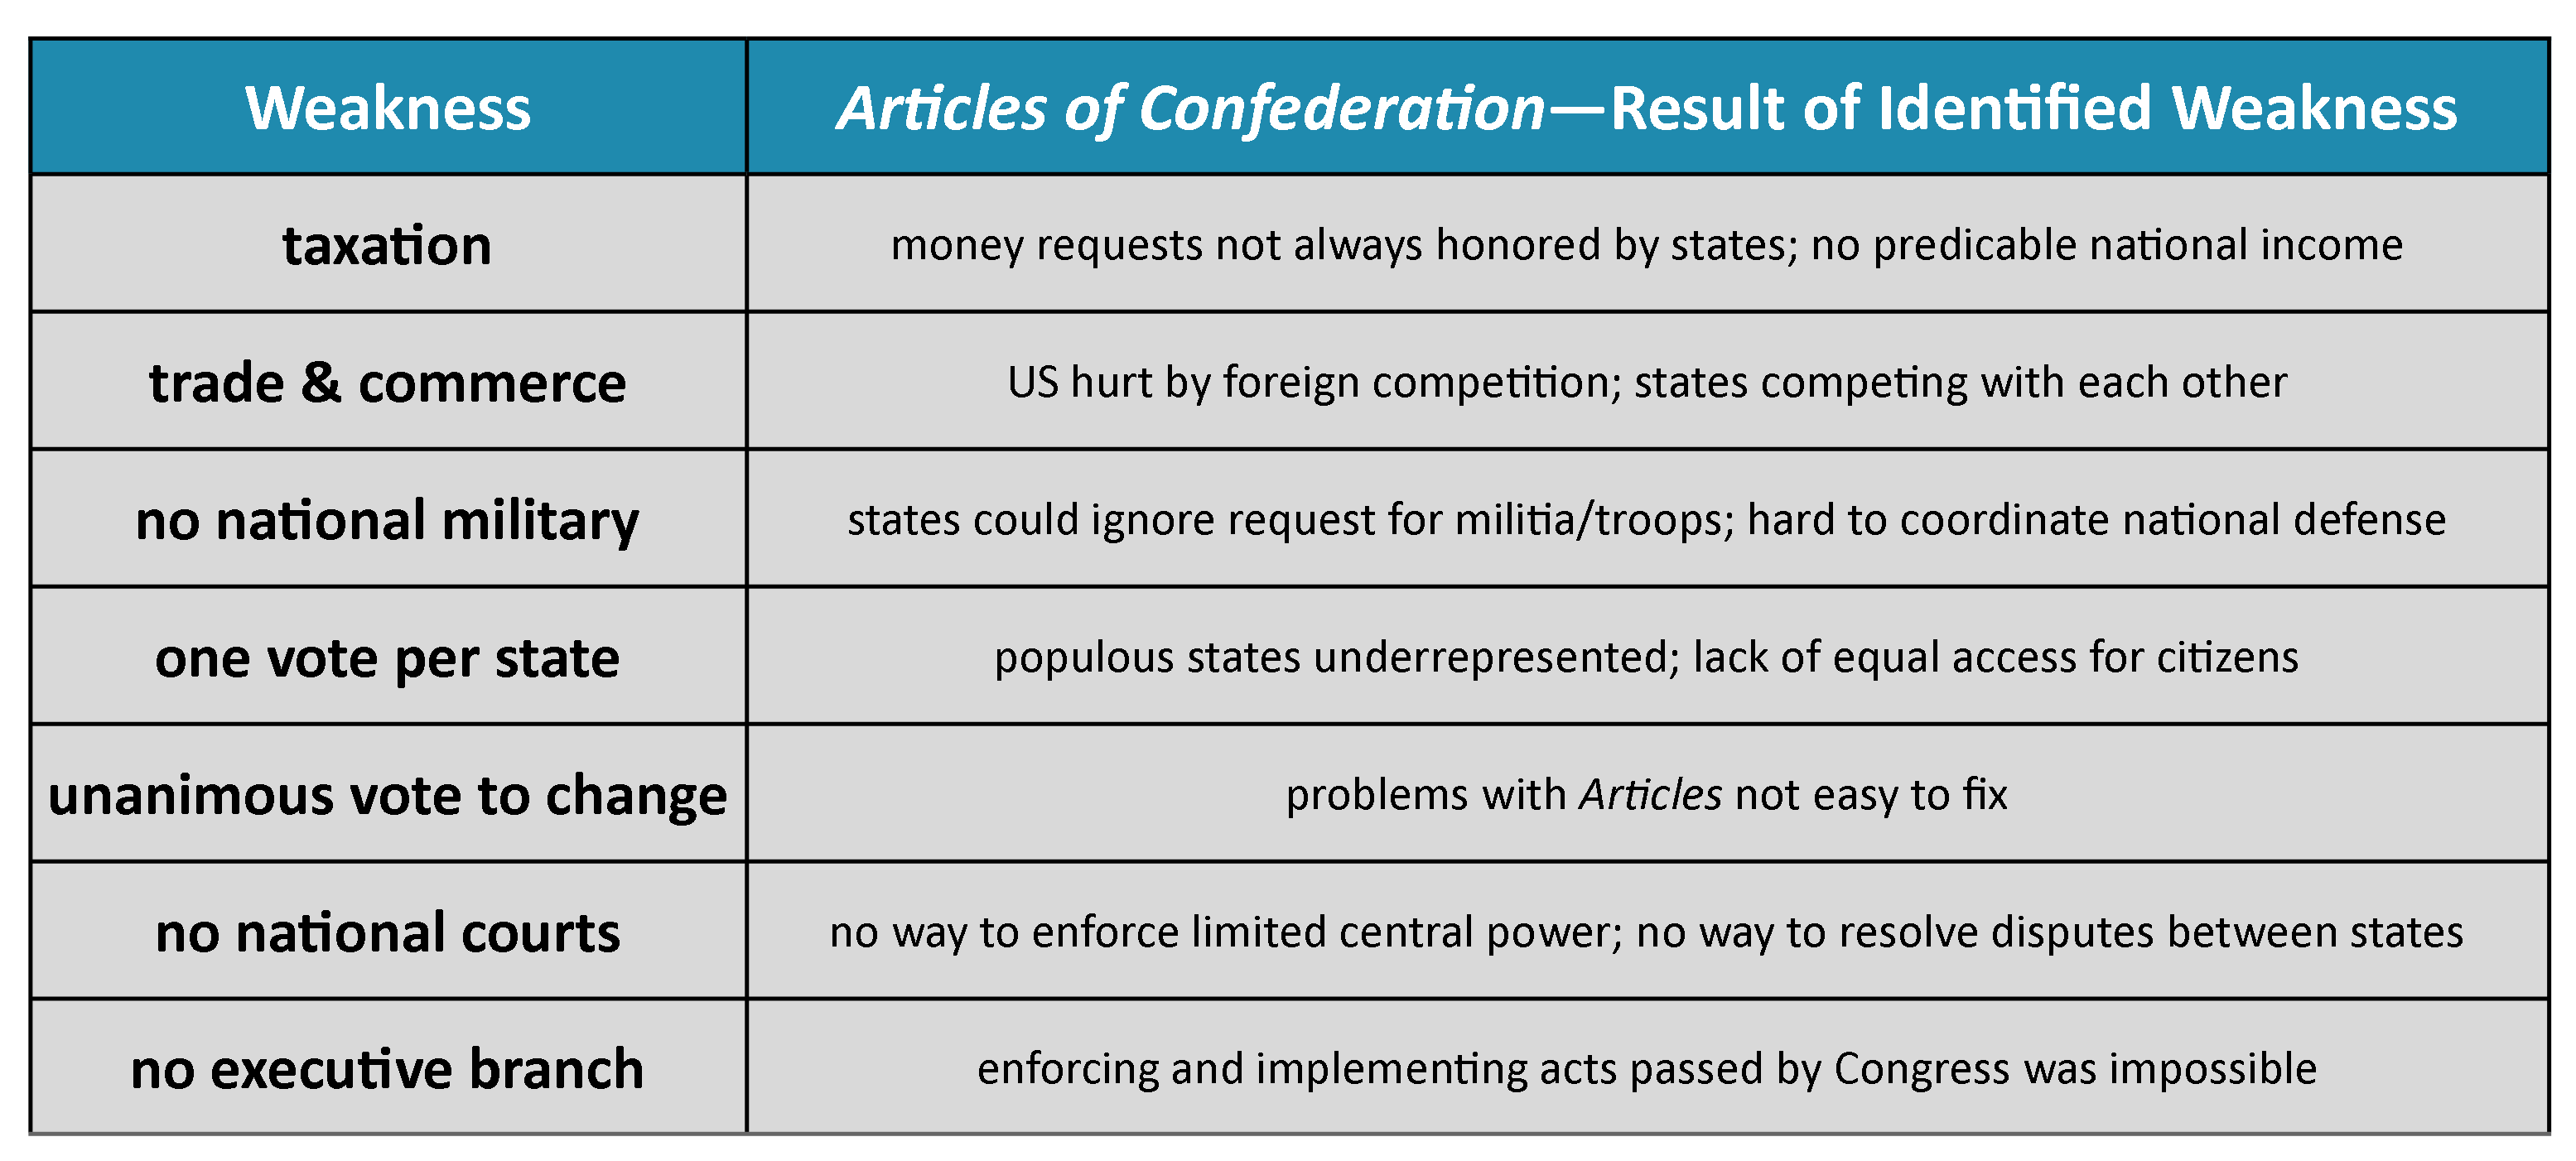 an overview of the power of the articles of confederation in the united states Articles of confederation and perpetual union between the states of new hampshire such of the powers of congress as the united states in congress assembled.